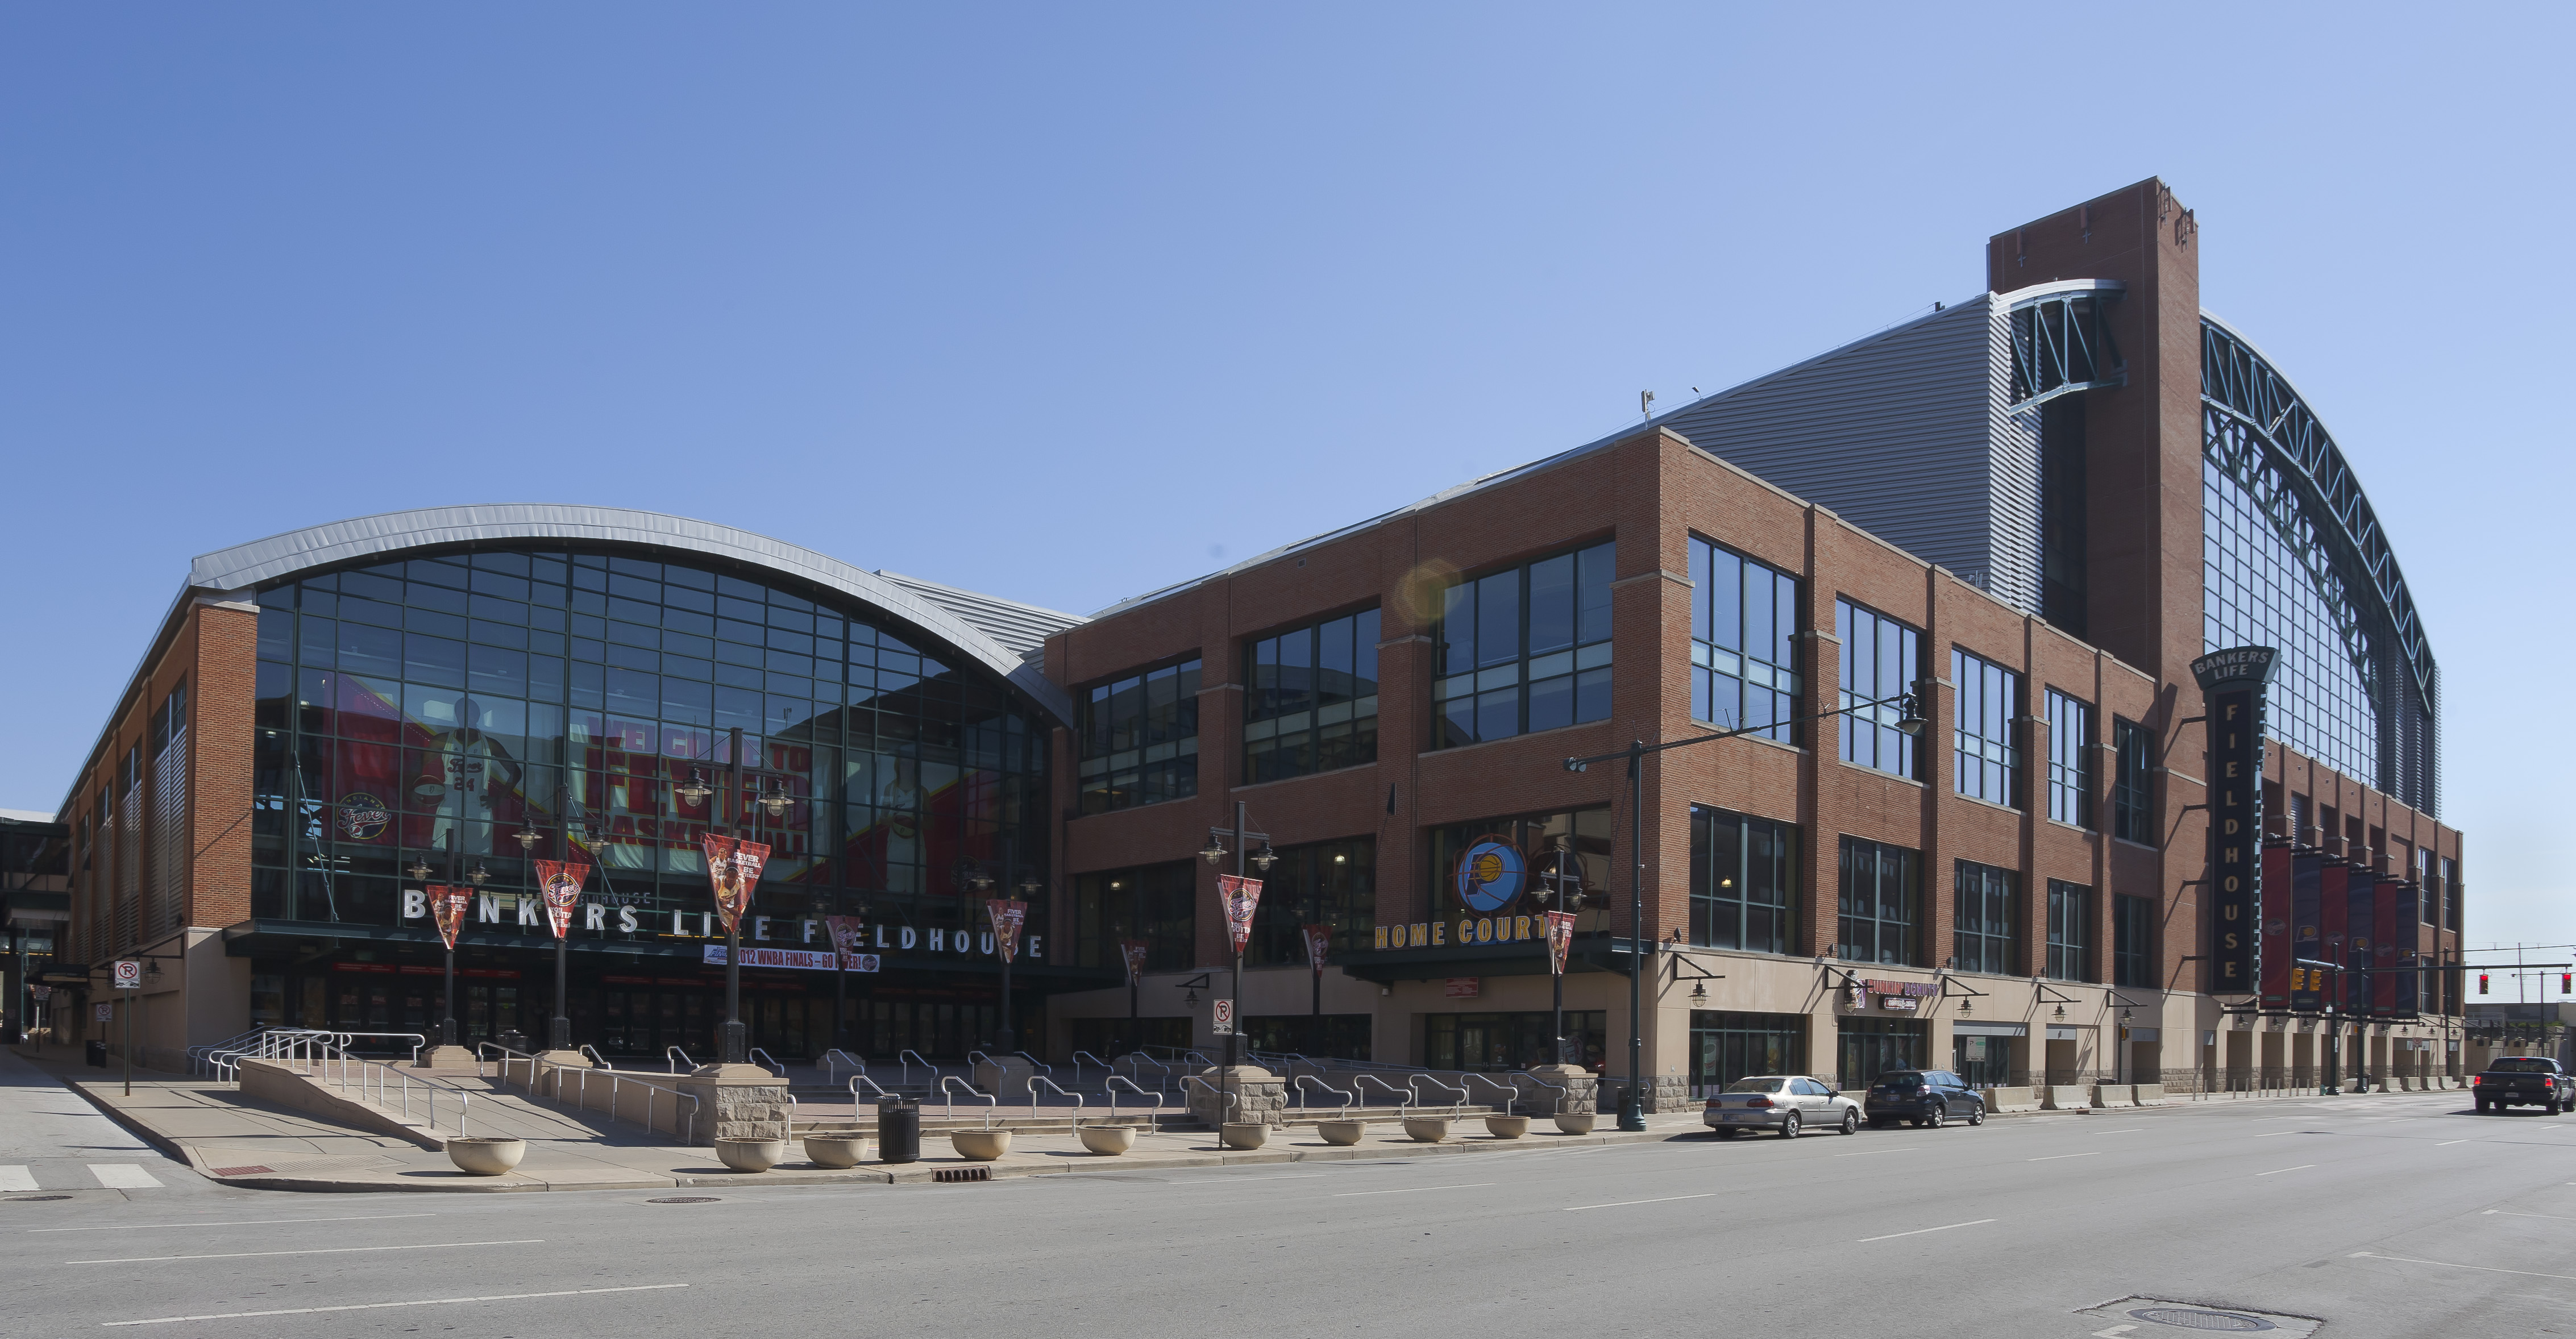 The stadium holds up to 18, 345 people and is also the home of the only women's professional basketball team in Indiana, the Indiana Fever.